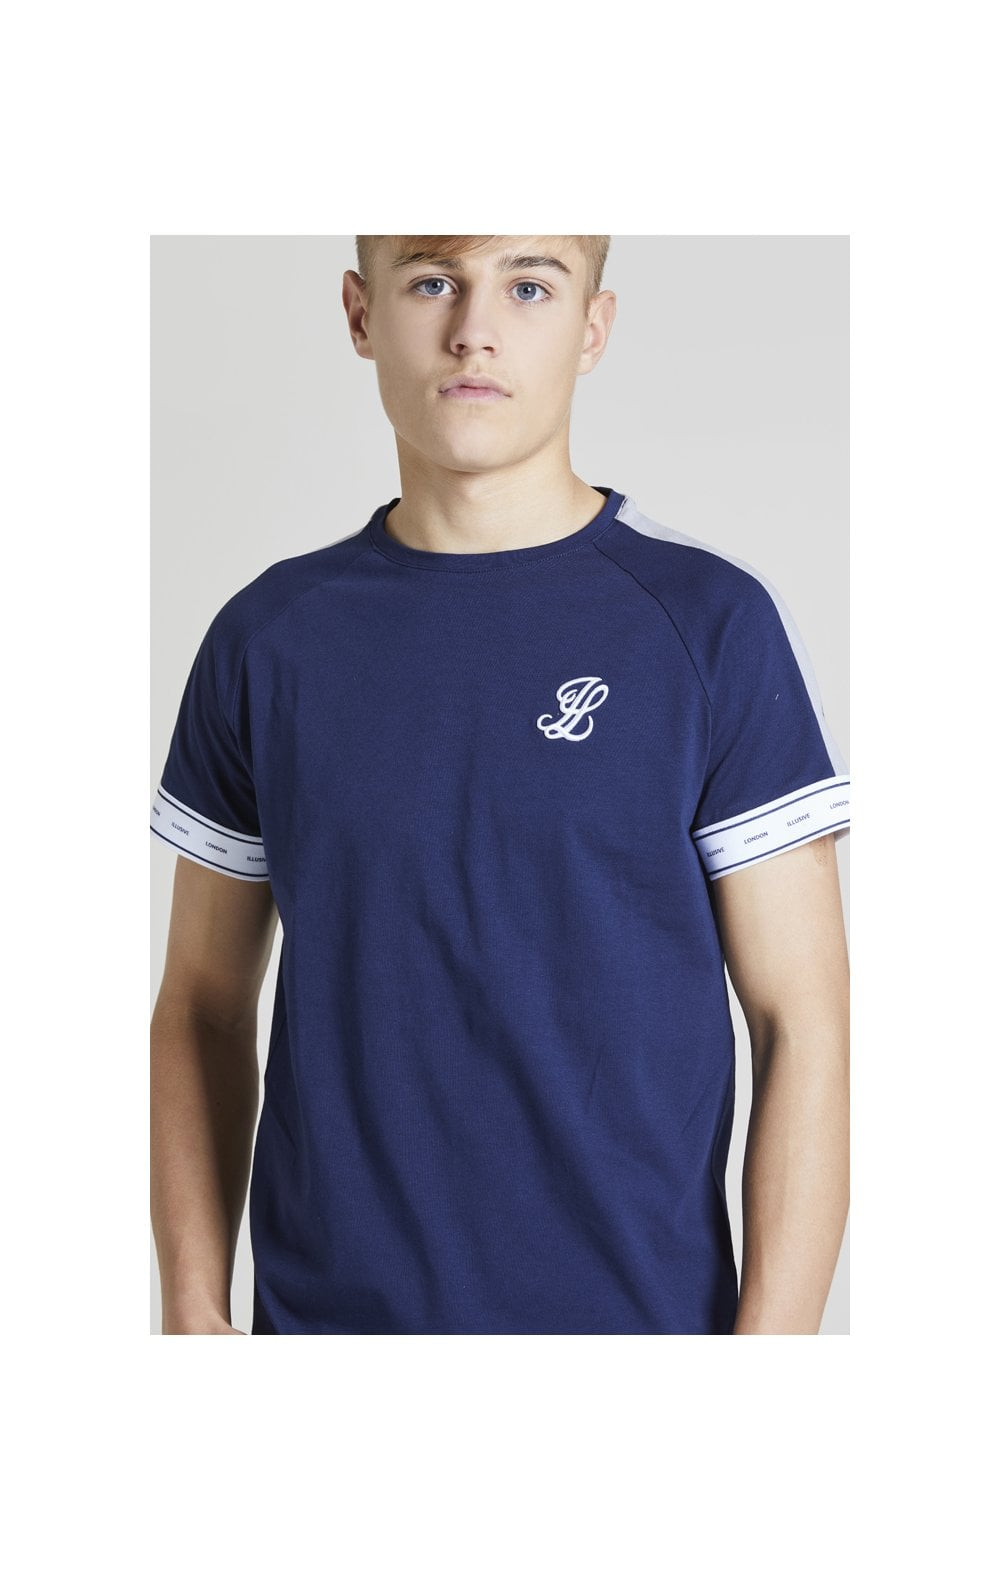 Load image into Gallery viewer, Illusive London Panel Tech Tee - Navy & Grey